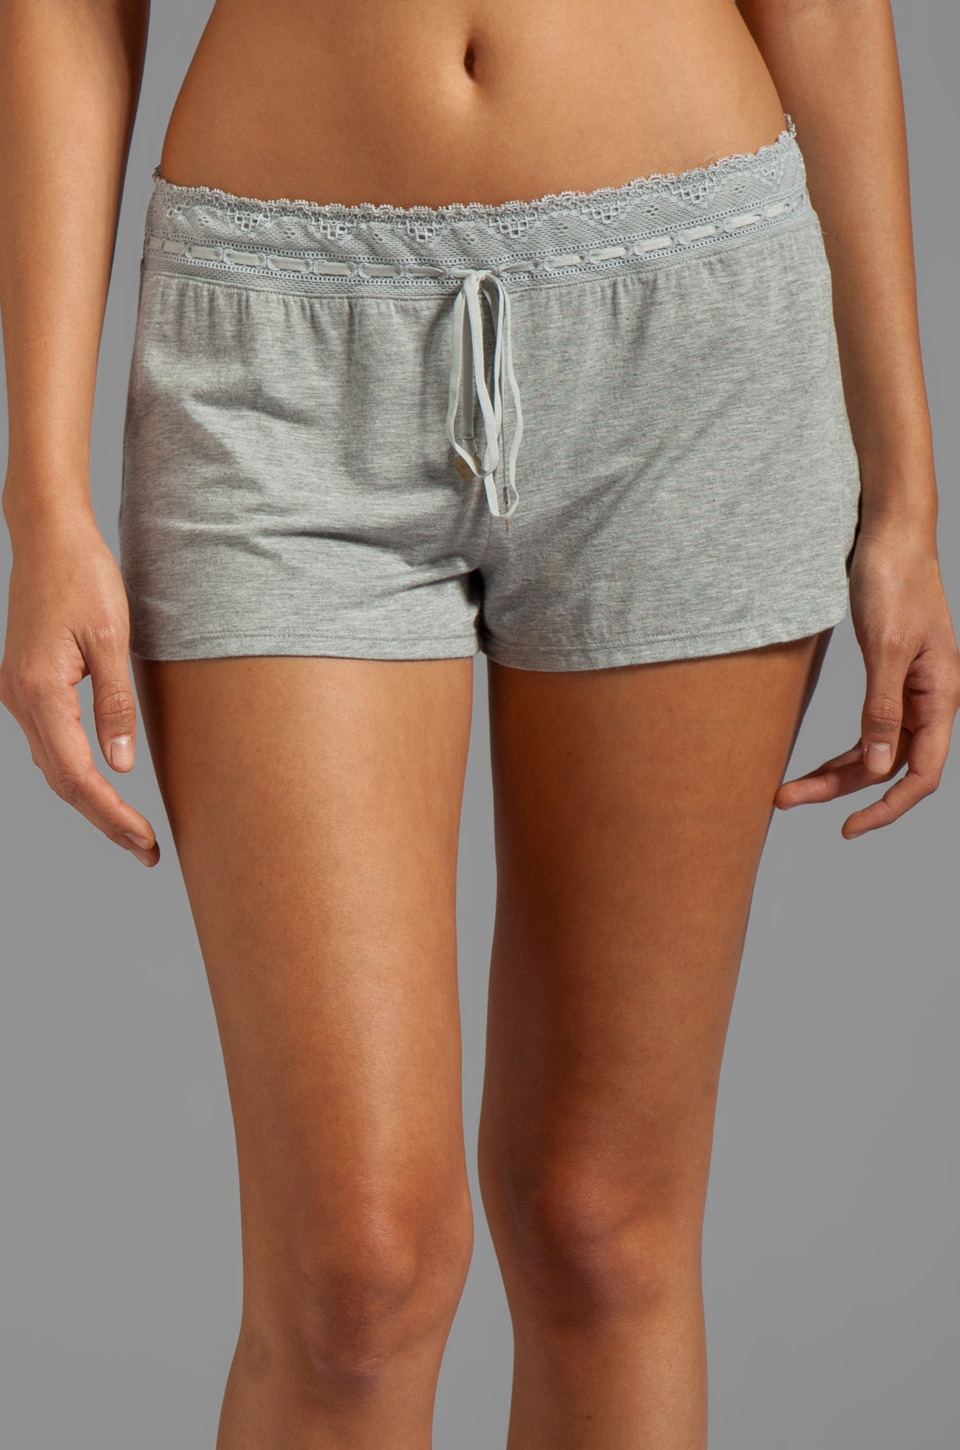 Juicy Couture Sleep Essential Short in Heather Cozy